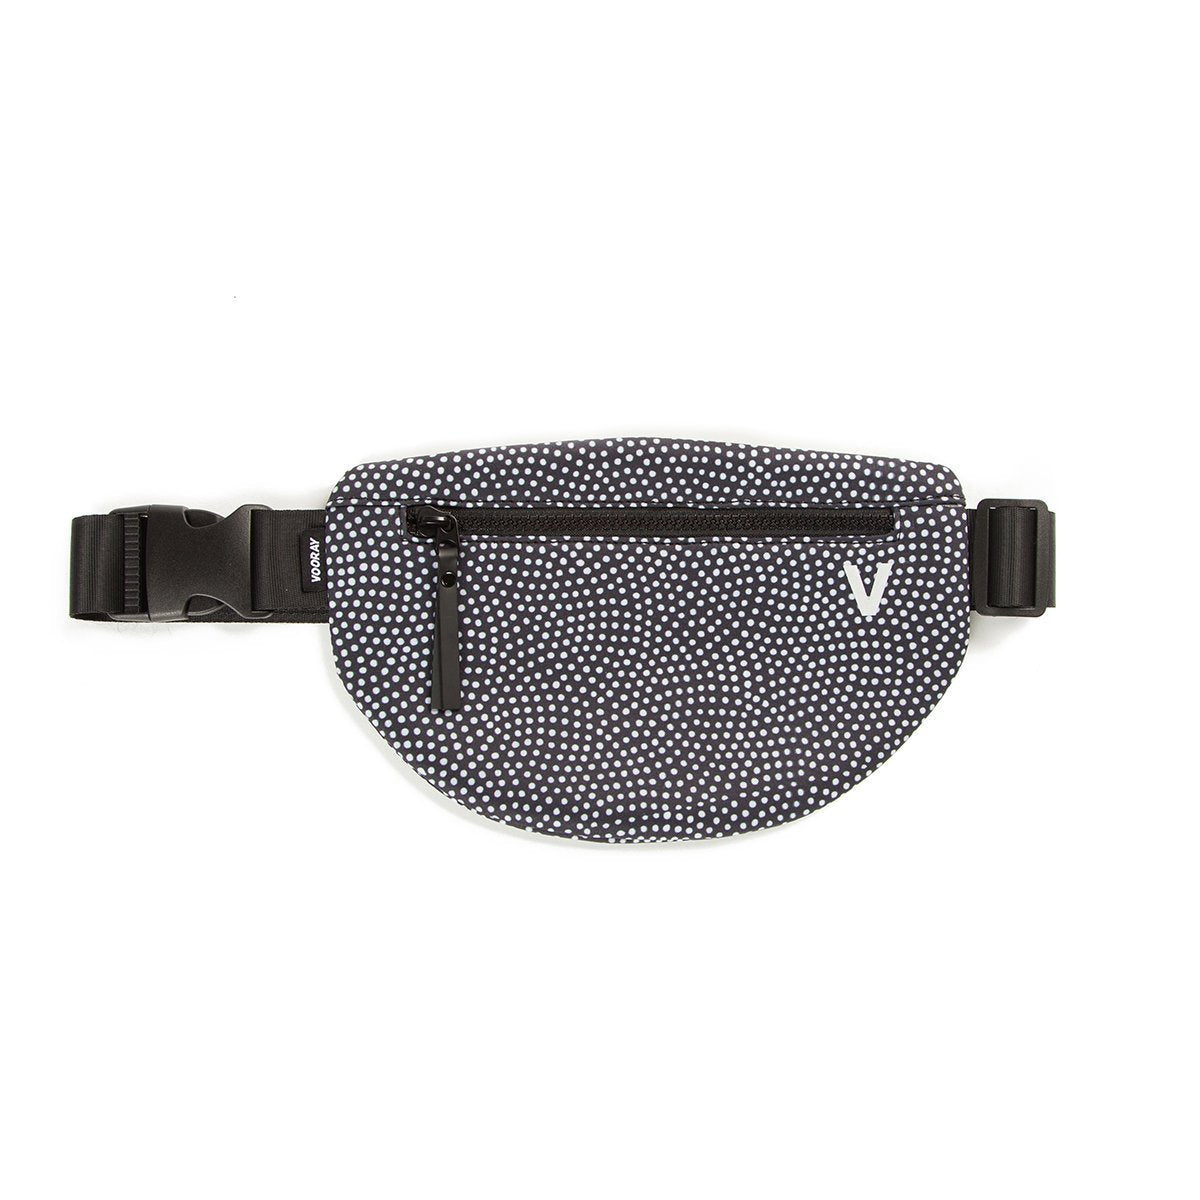 Vooray - Urban Polka Dot Fanny Pack